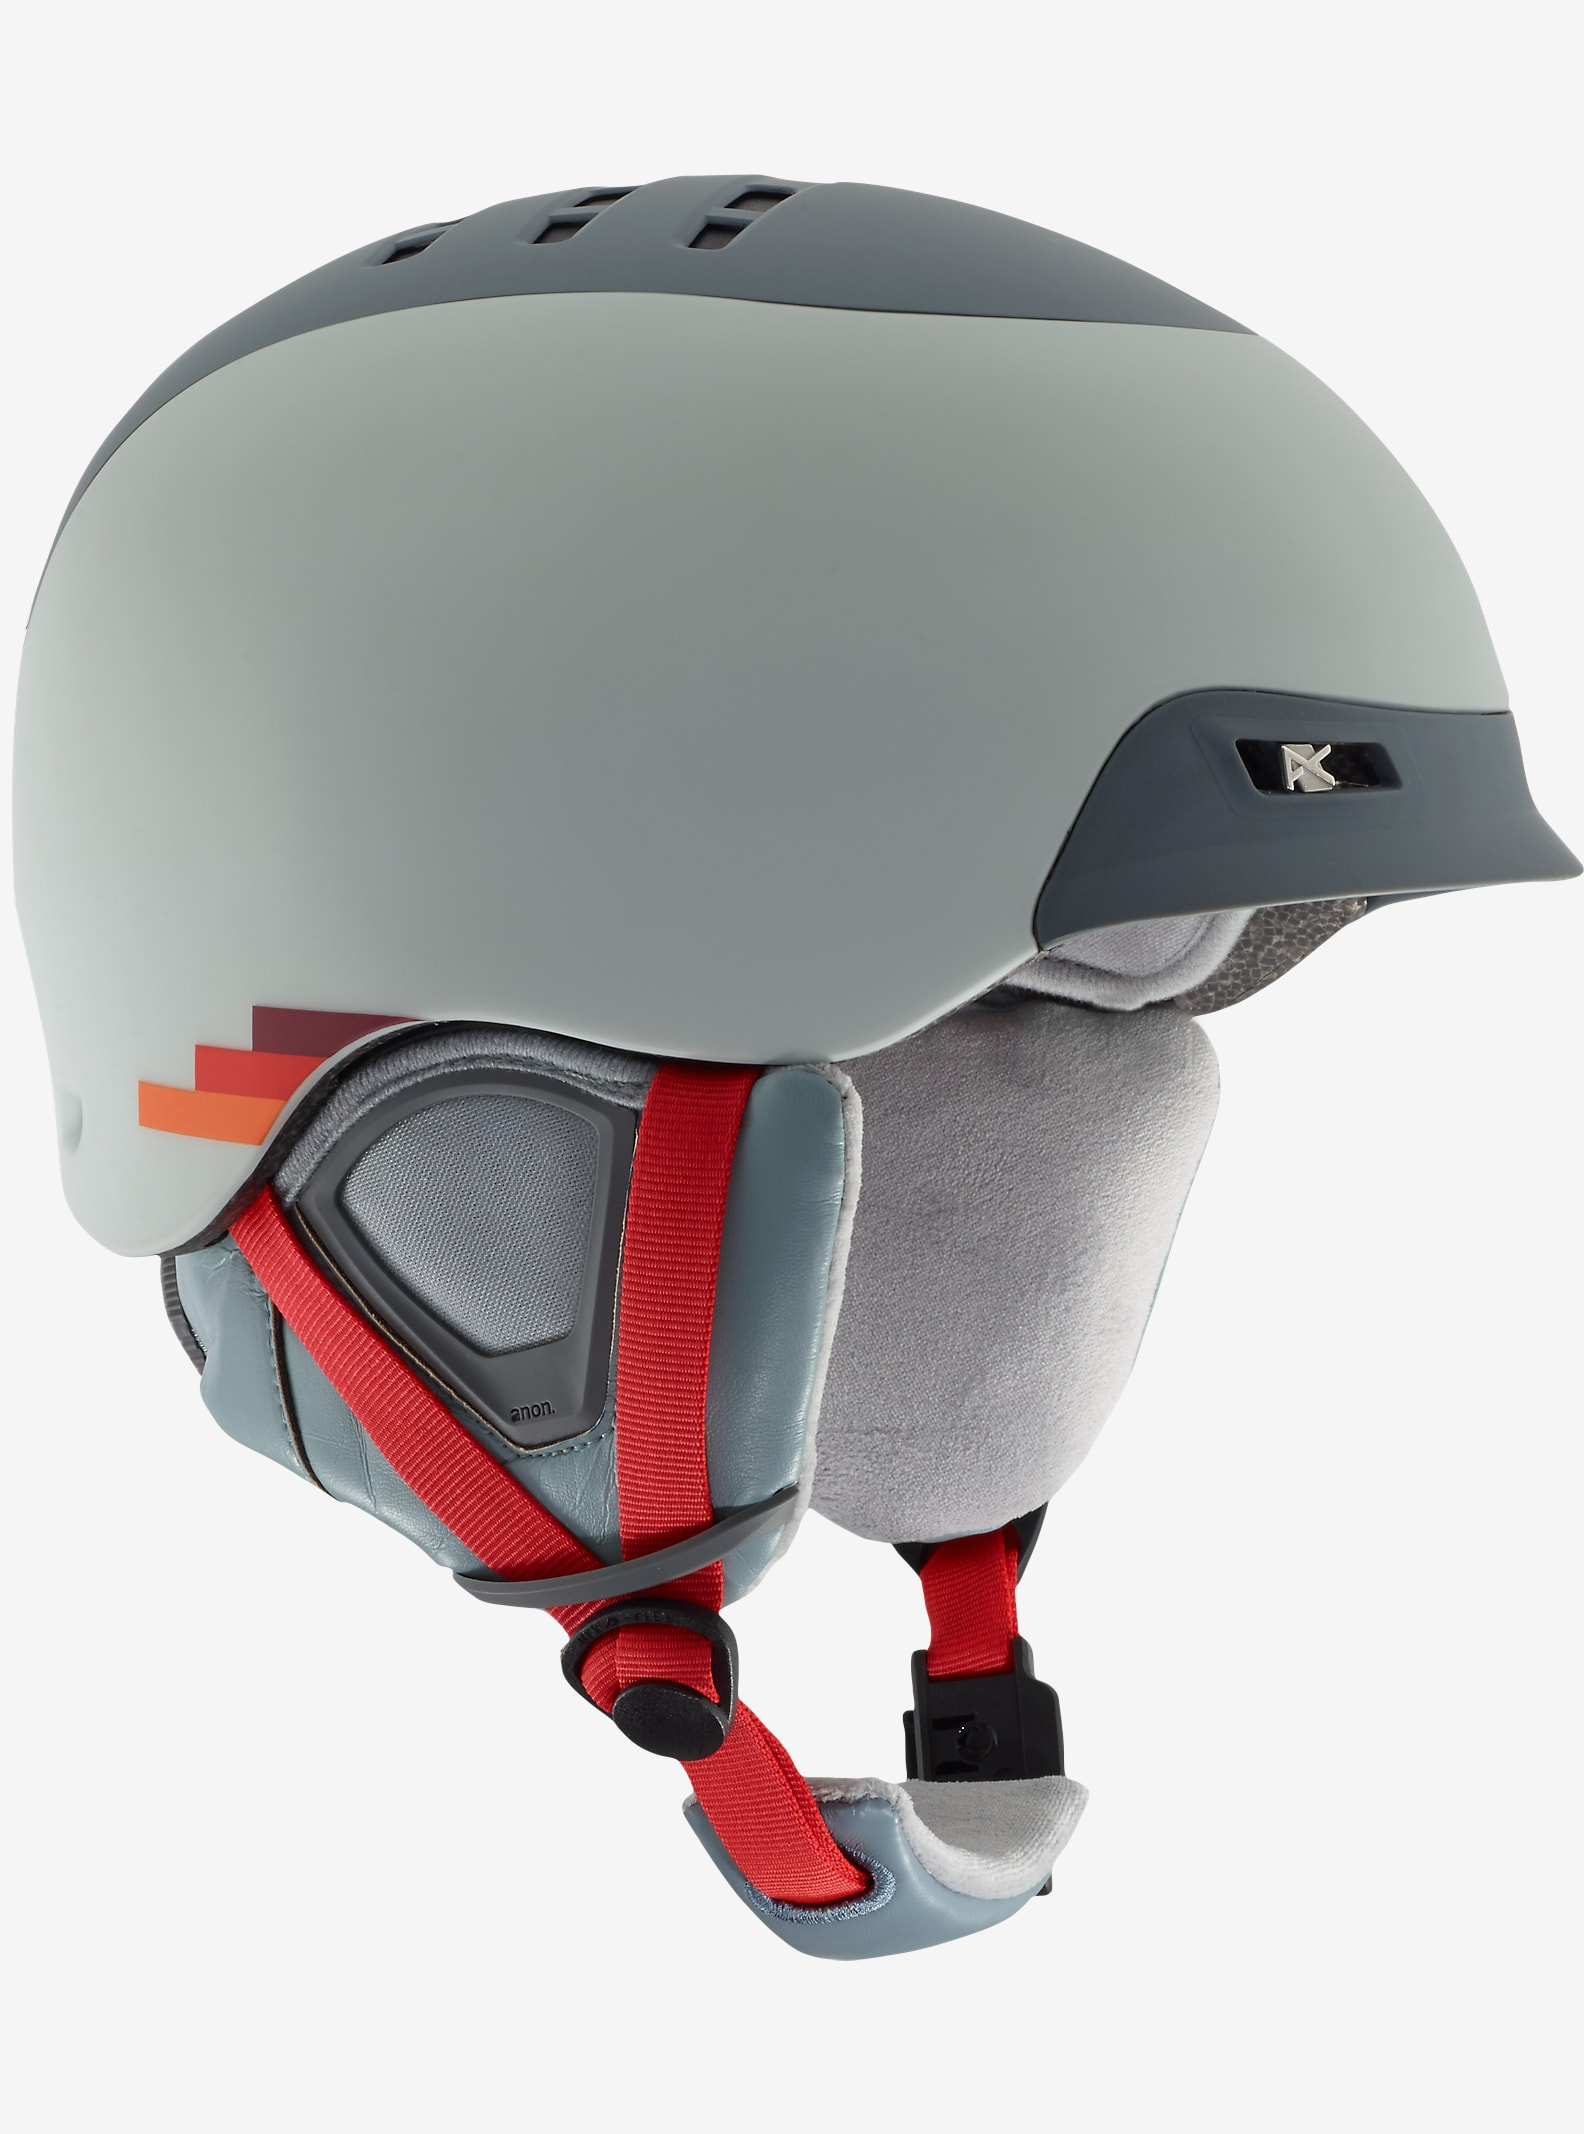 anon. Nelson Helmet shown in VHS Gray